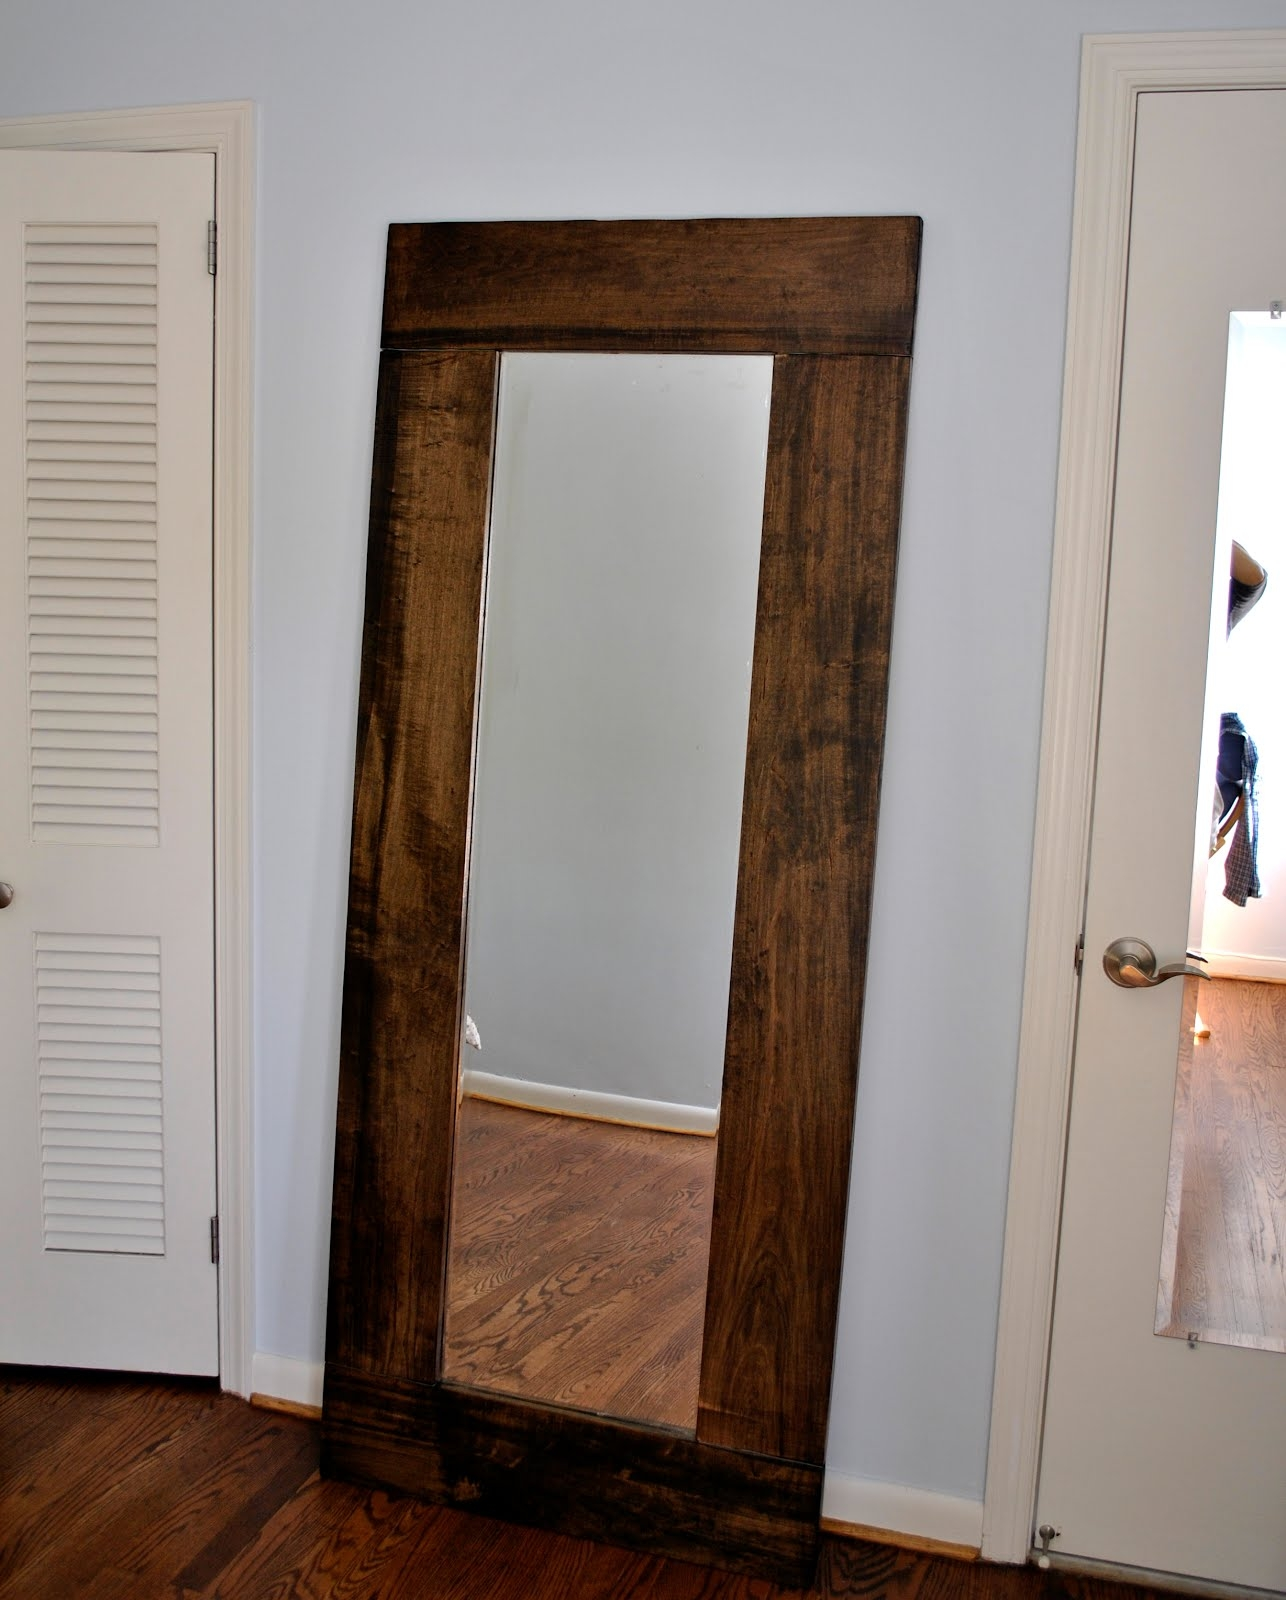 Leaned Wooden Framed Wall Mirror In Extra Large Part Of Furniture Inside Big Mirrors (Image 12 of 15)